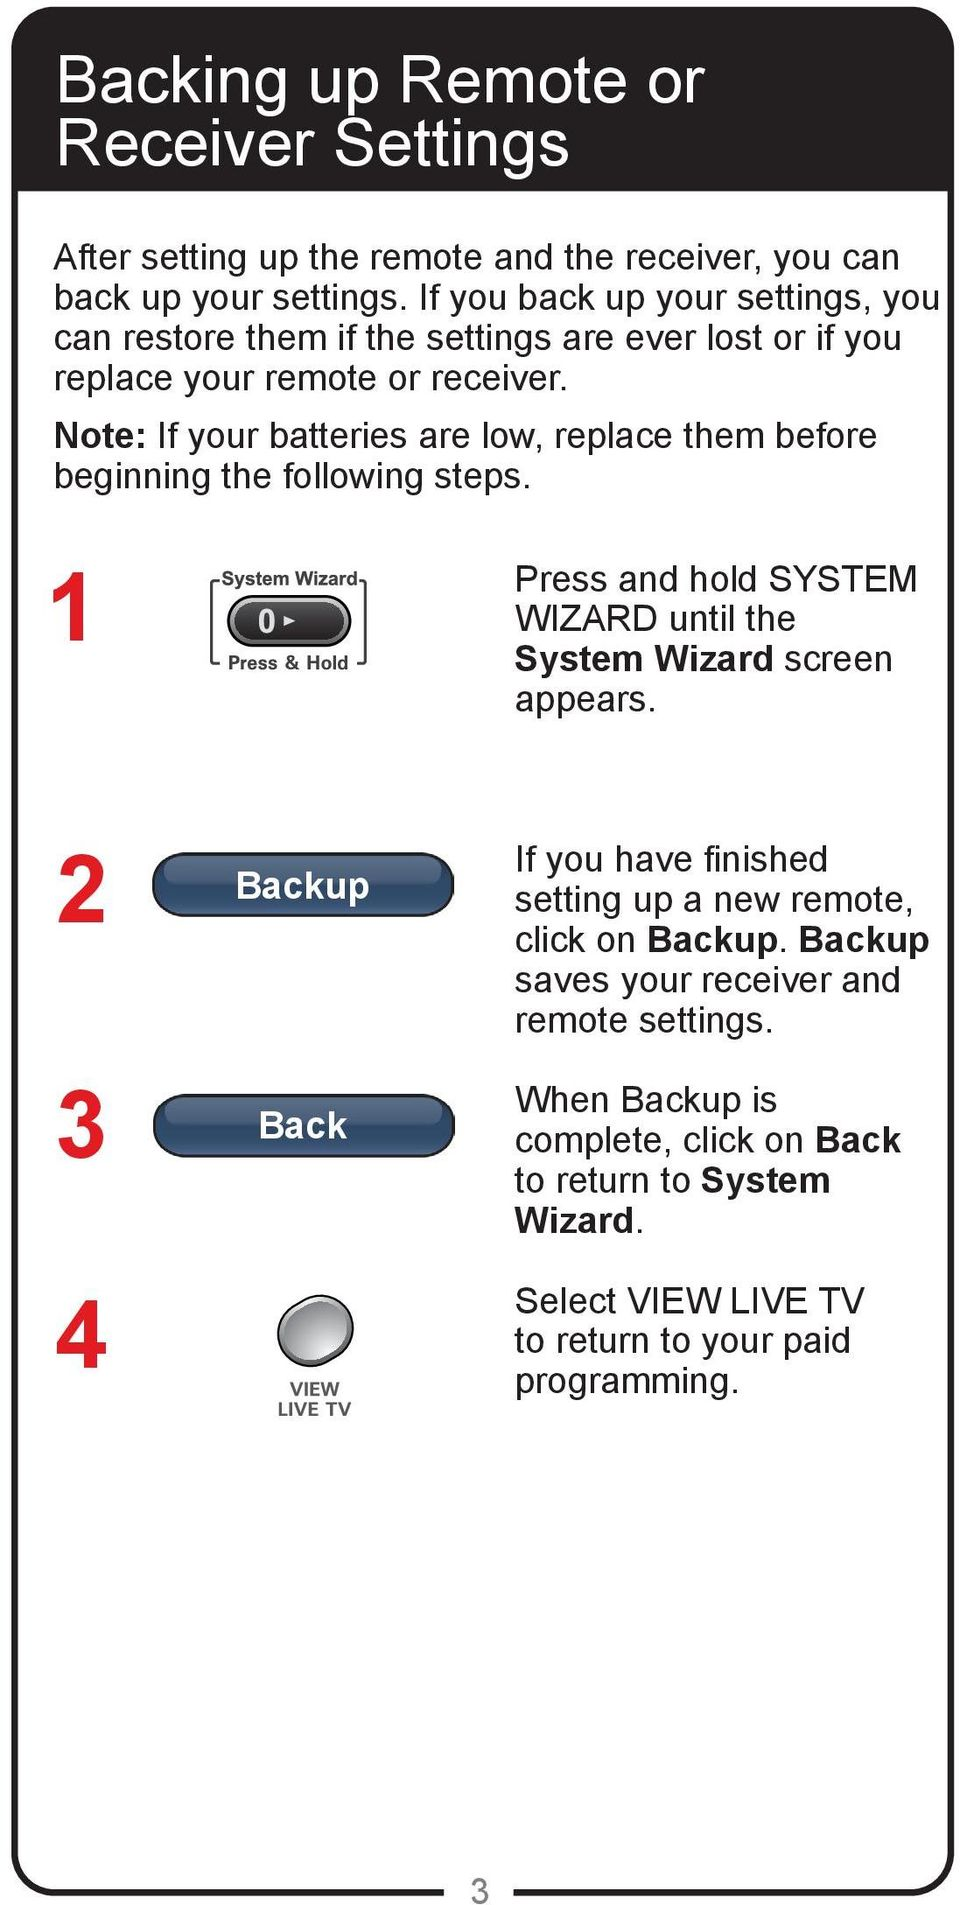 Note: If your batteries are low, replace them before beginning the following steps. 1 Press and hold SYSTEM WIZARD until the System Wizard screen appears.